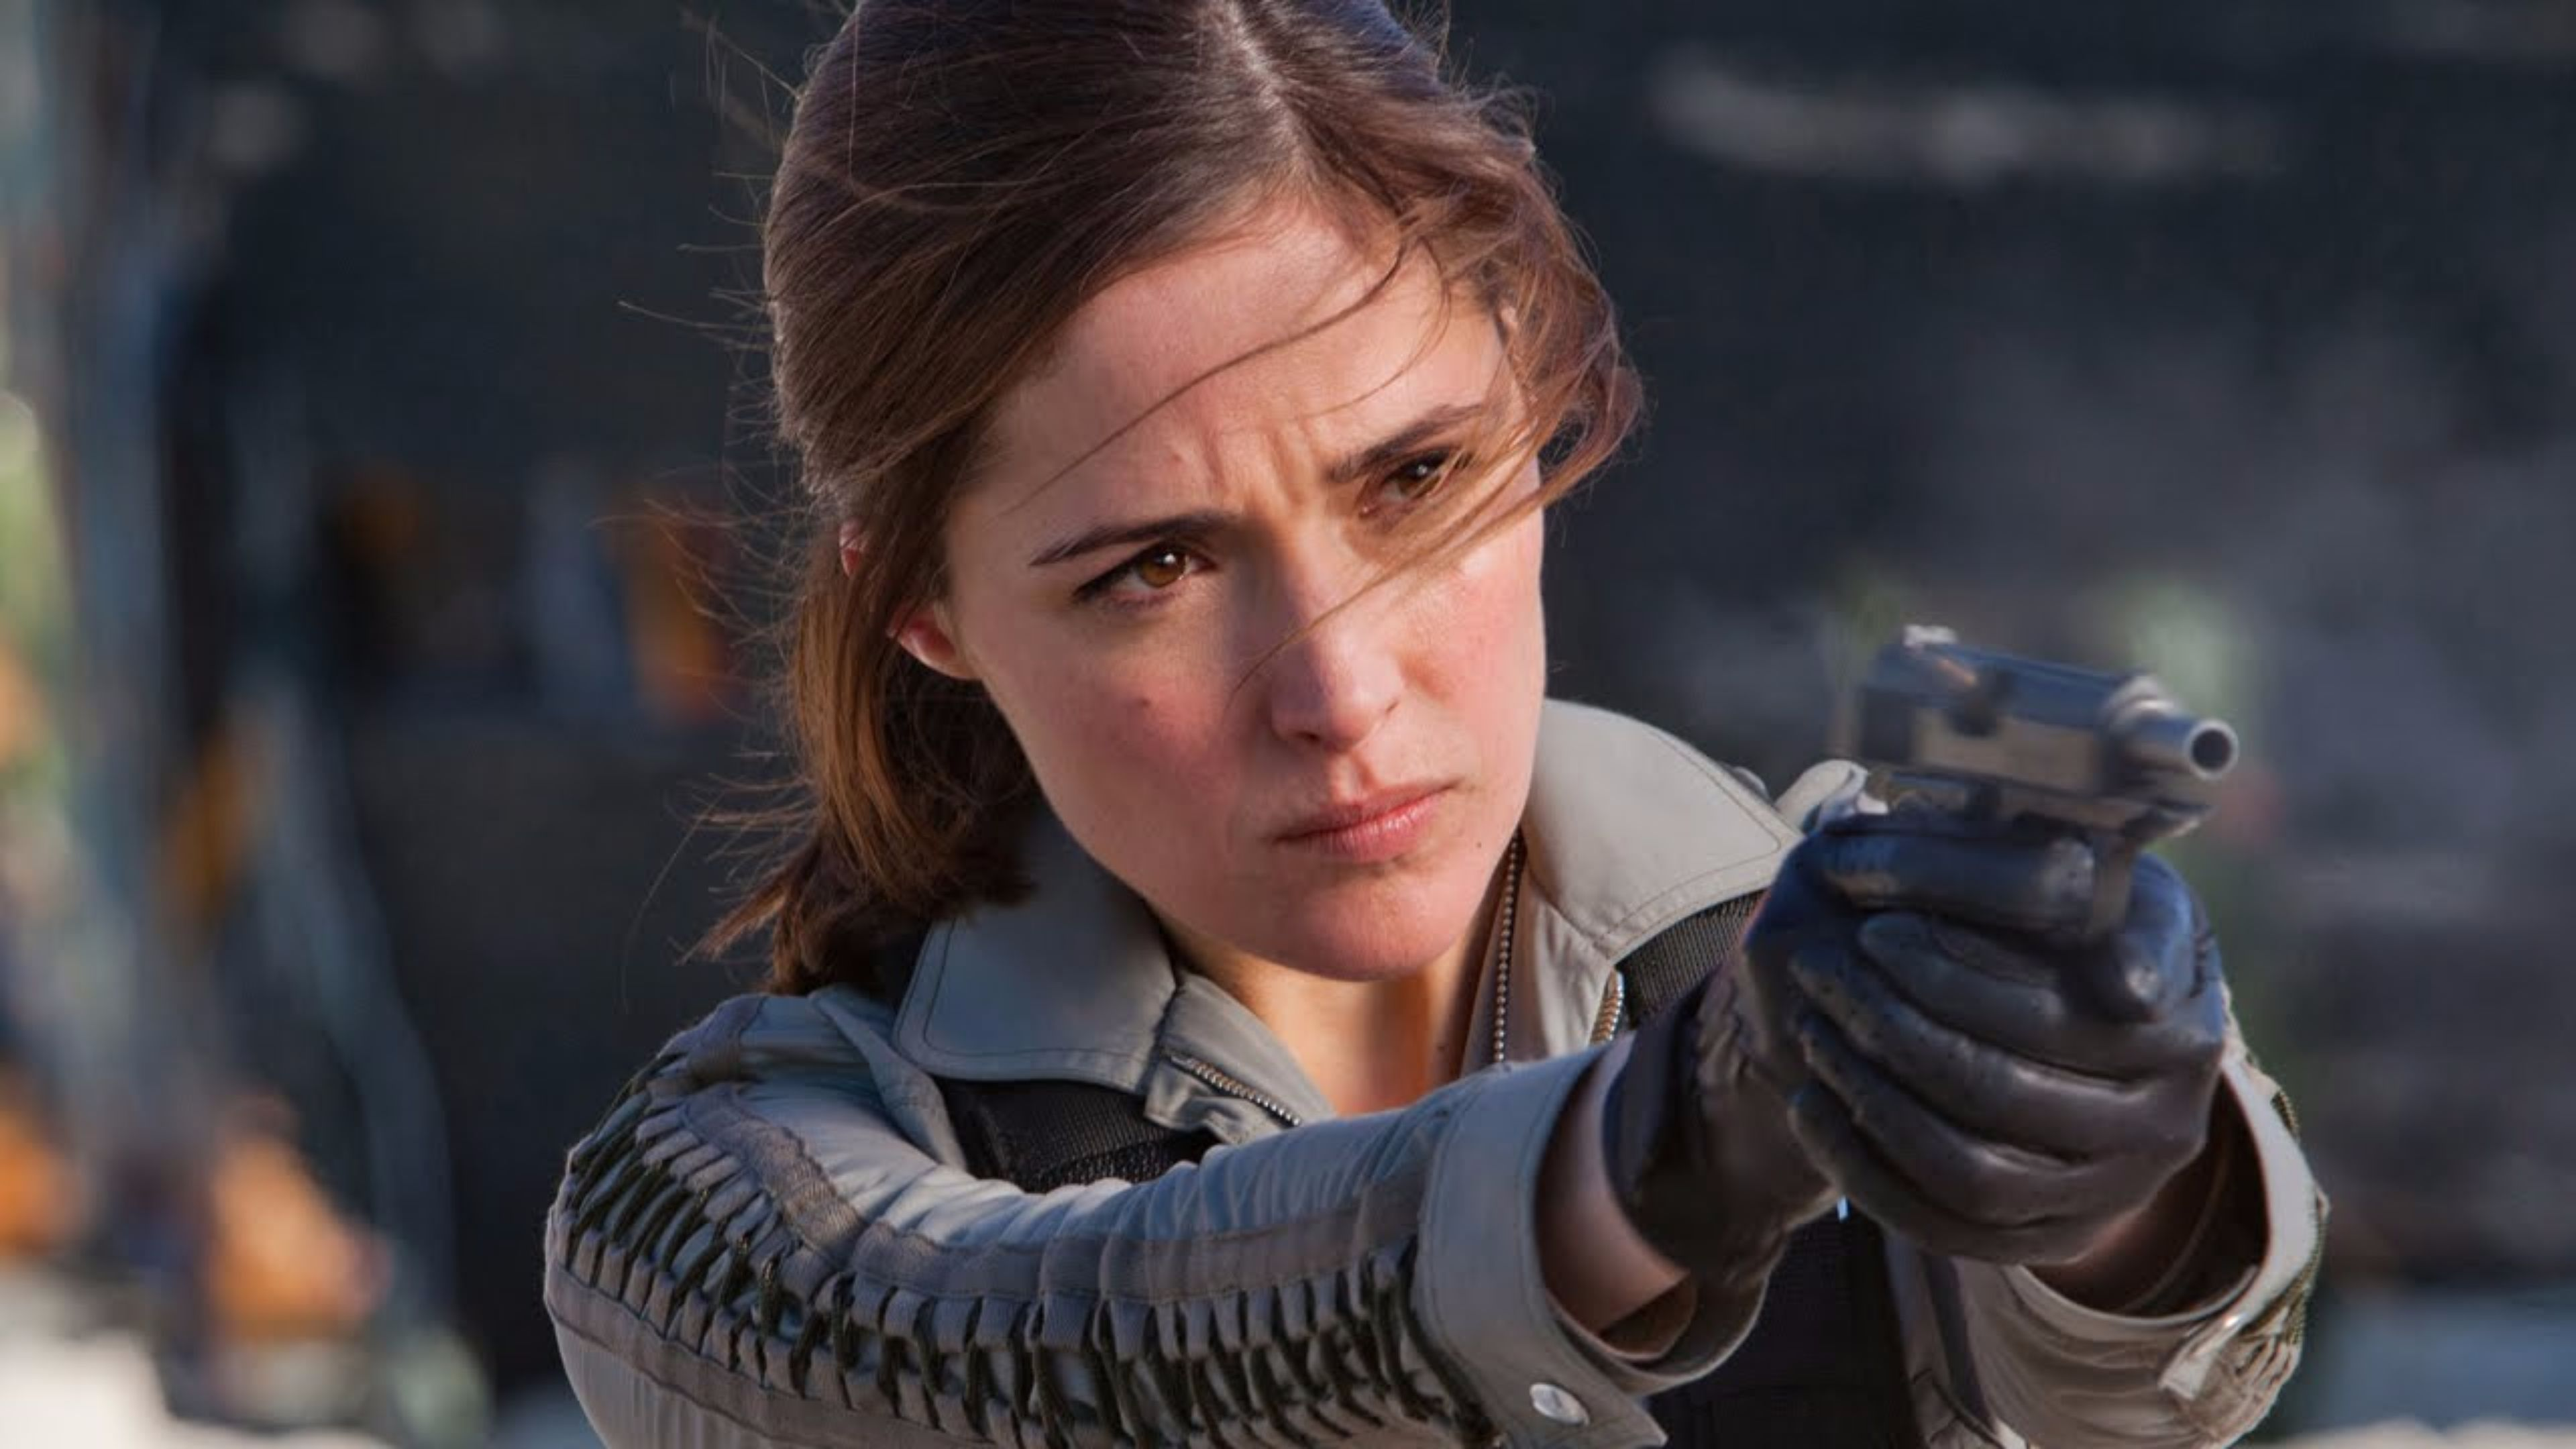 3840x2160 - Rose Byrne Wallpapers 17